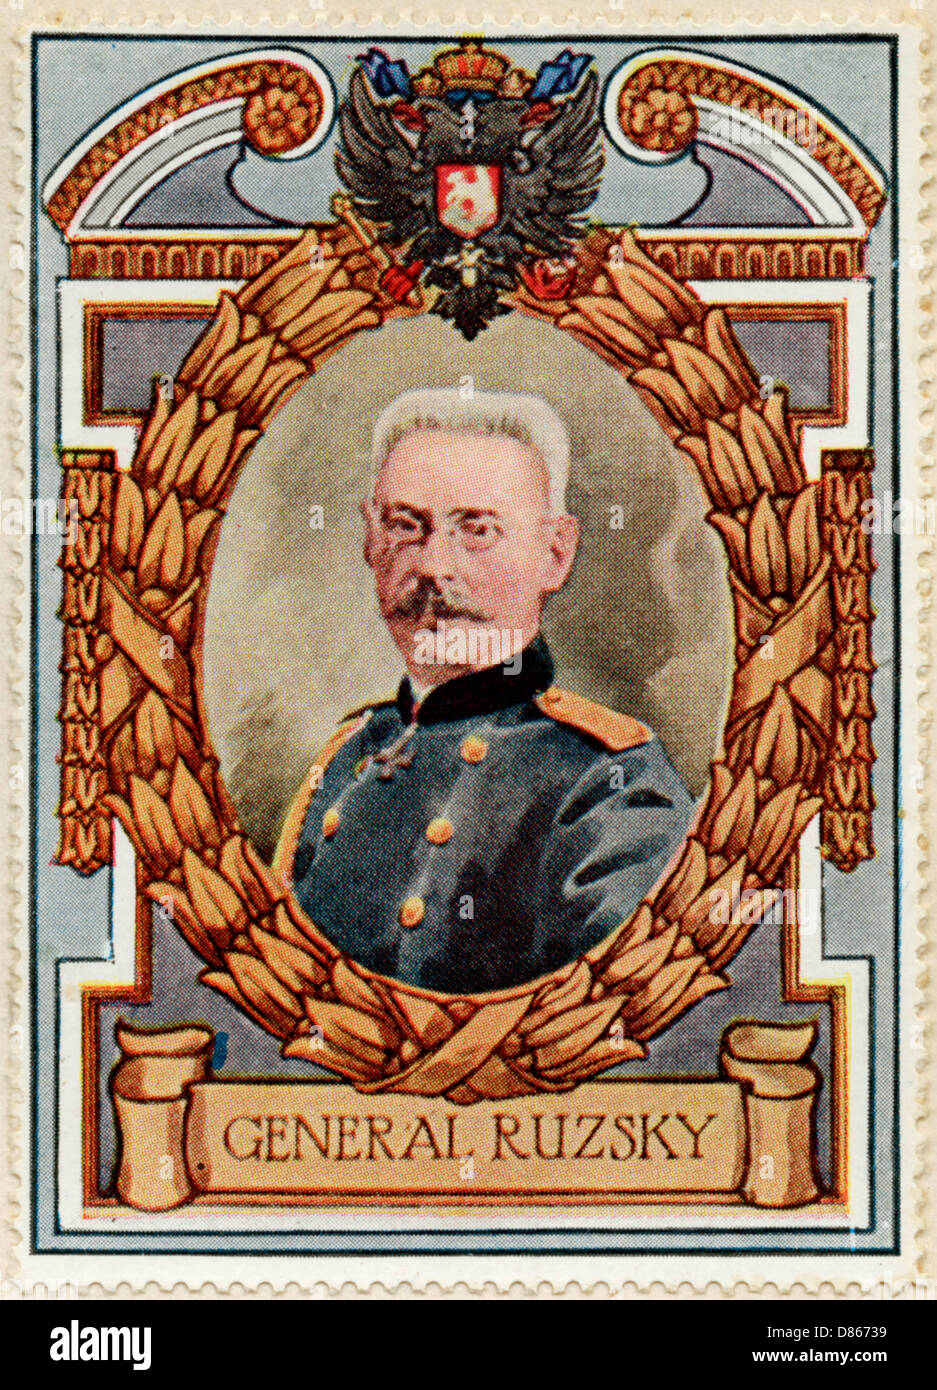 General Ruzsky Stamp - Stock Image